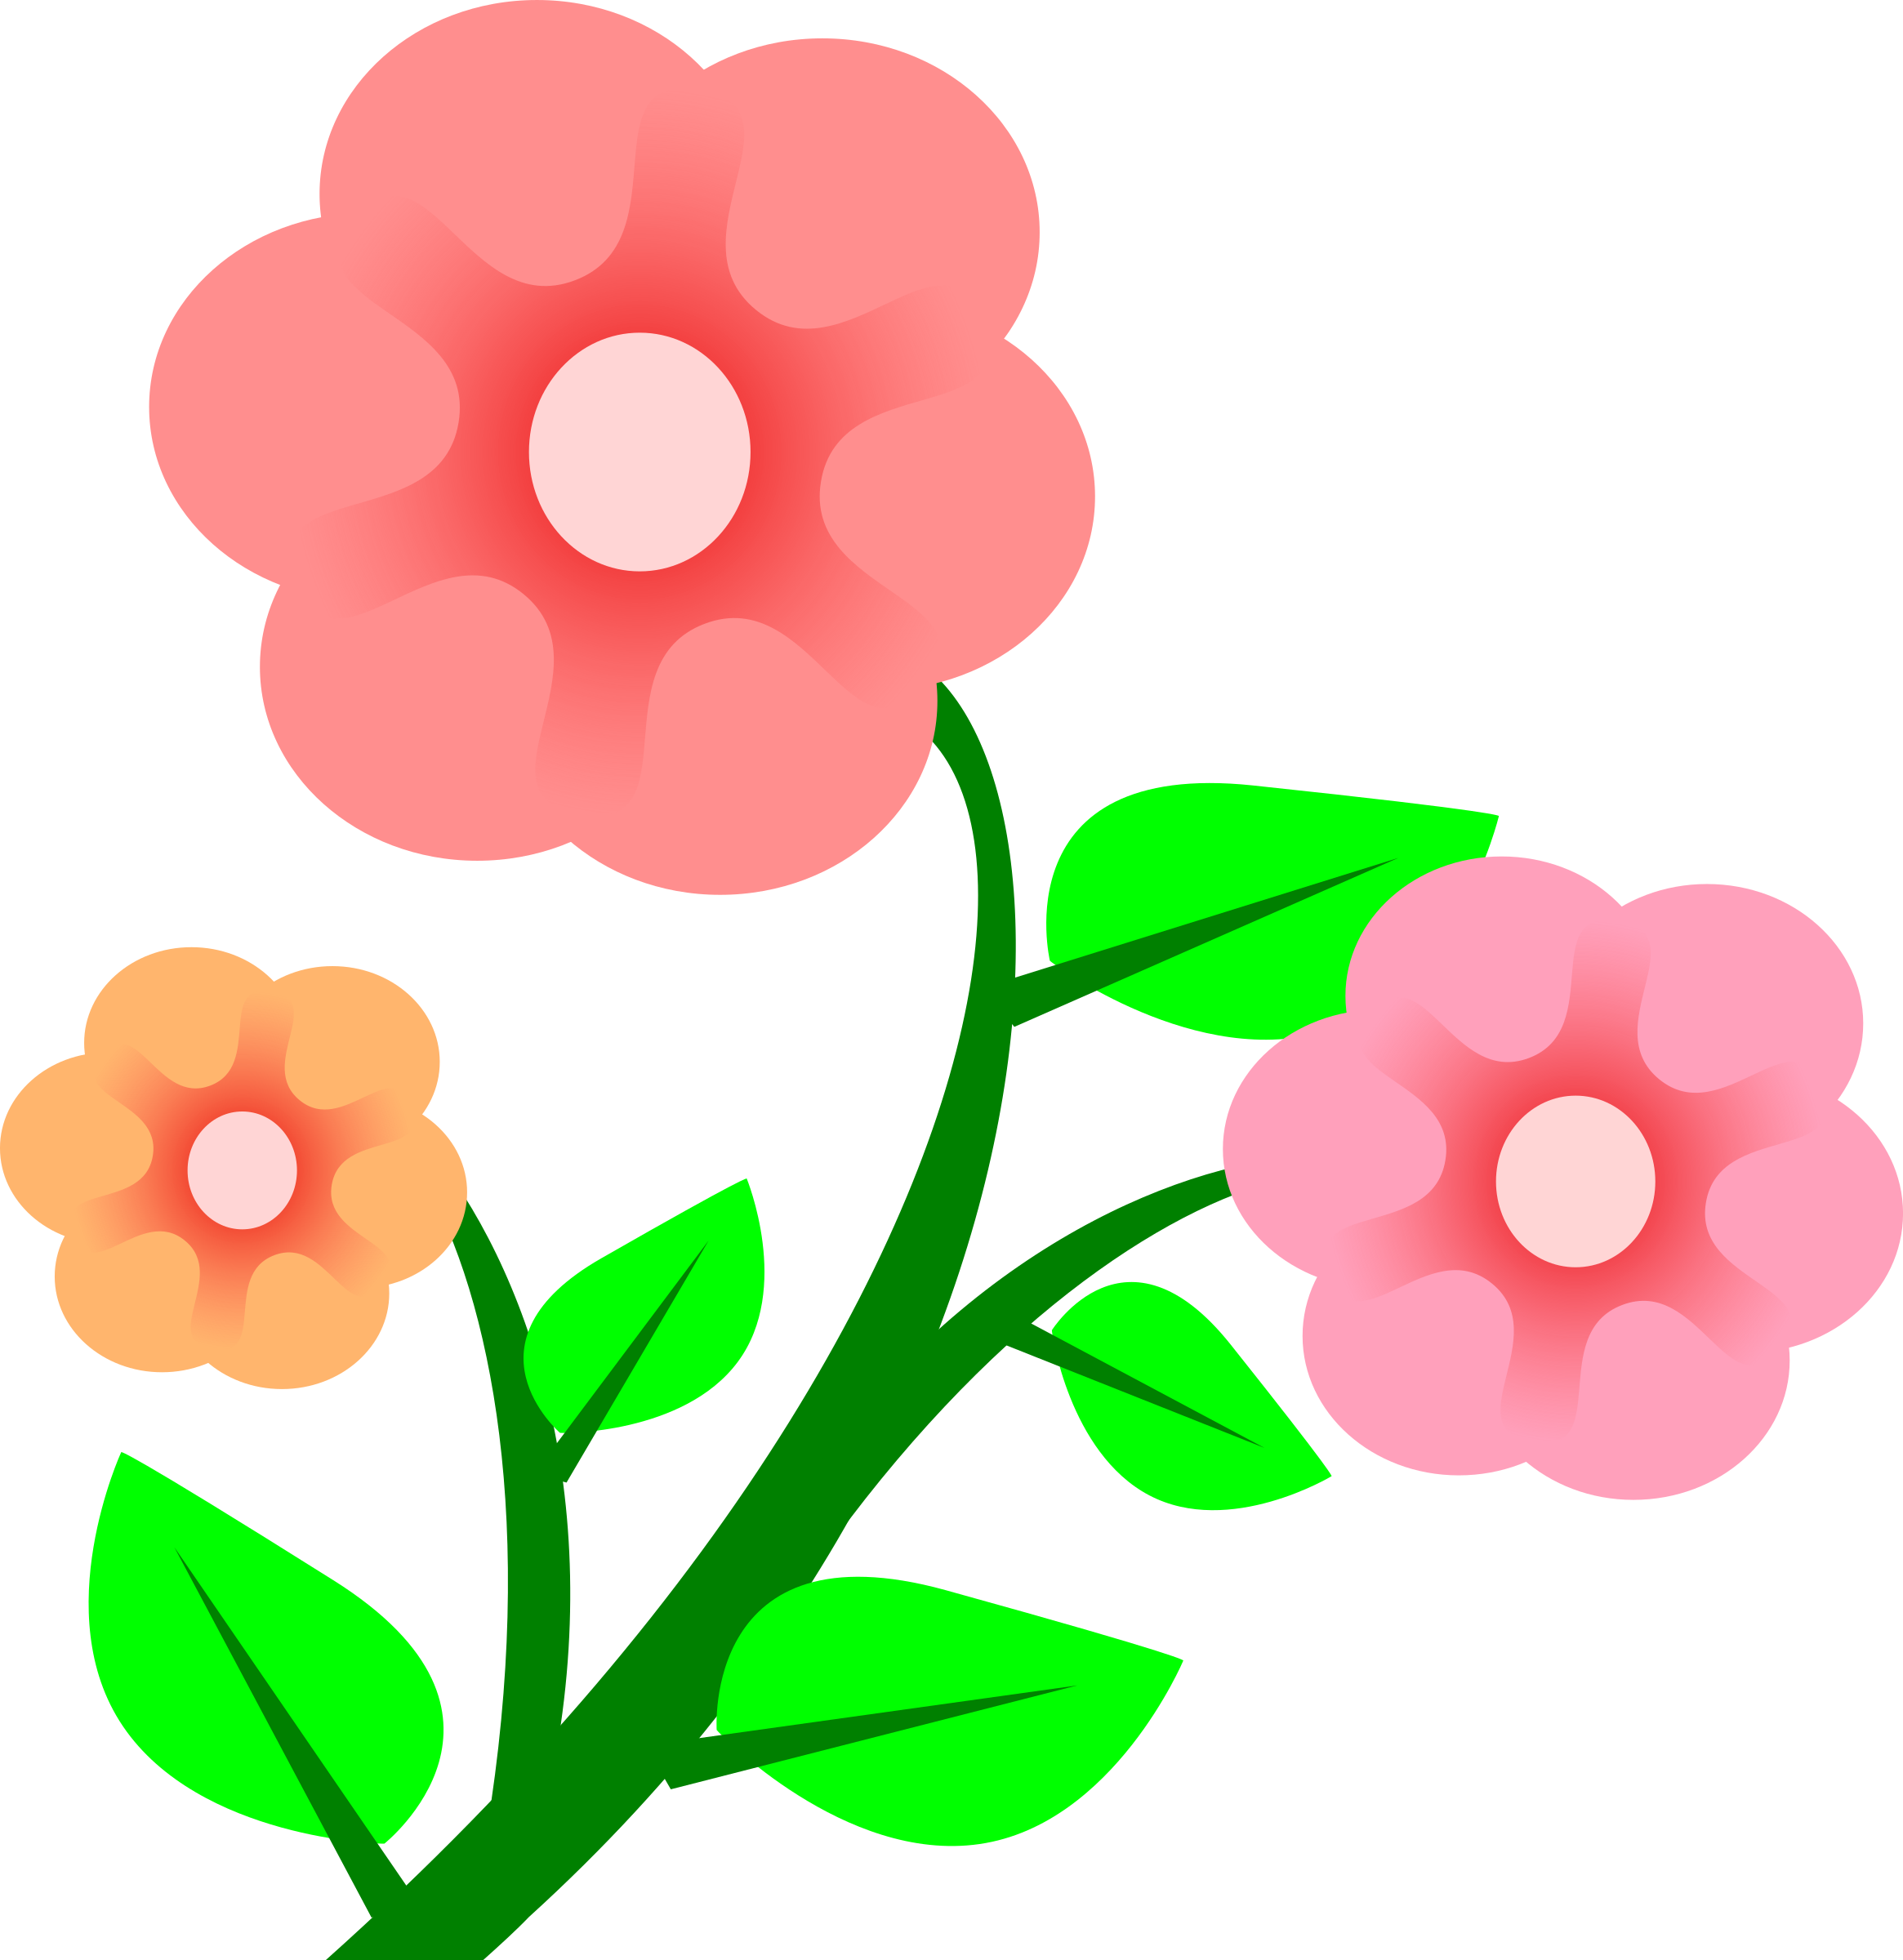 flower cartoon clipart at getdrawings com free for personal use rh getdrawings com